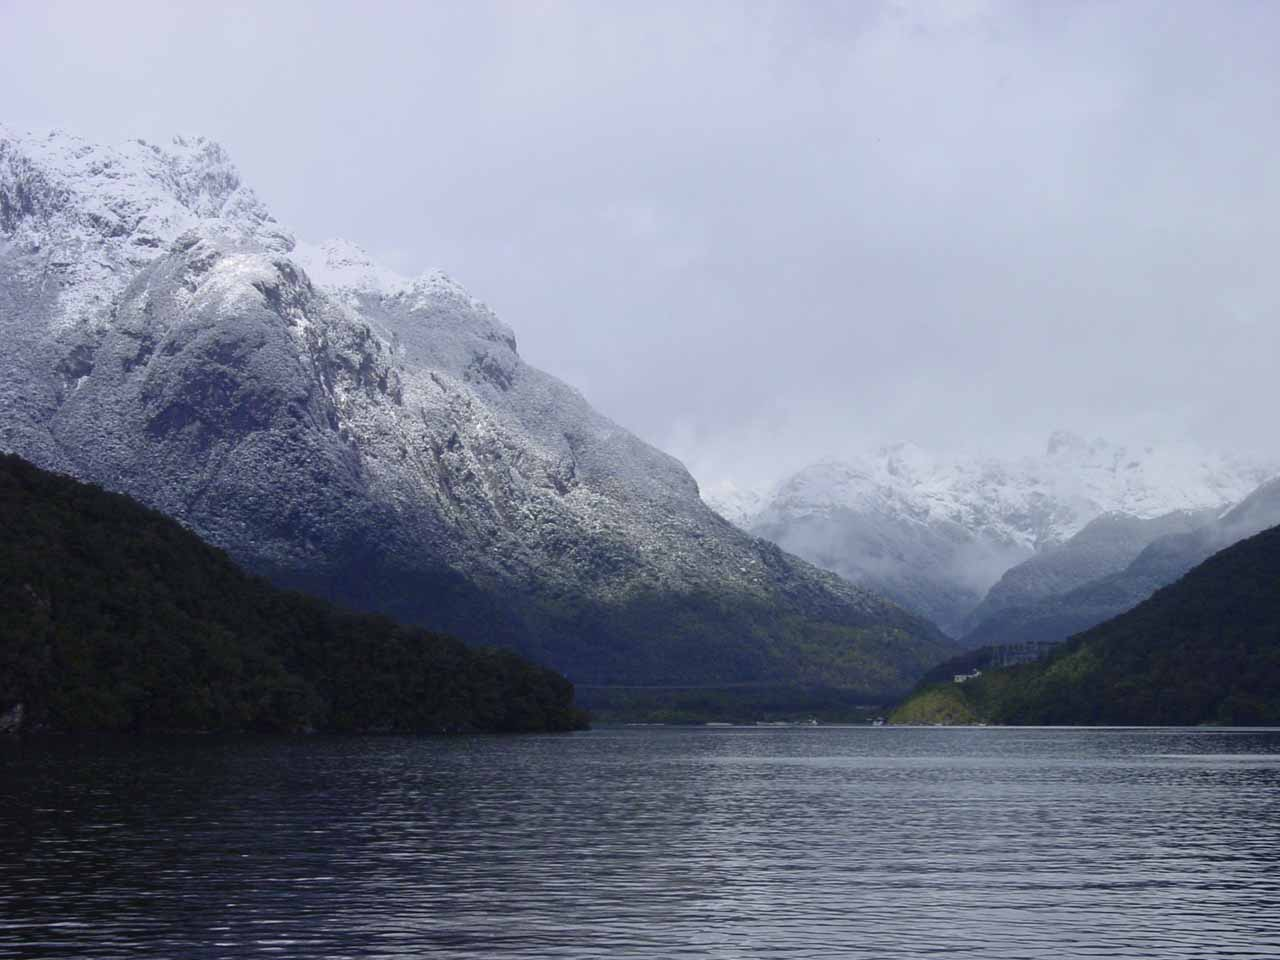 Looking ahead as we approached the West Arm of Lake Manapouri